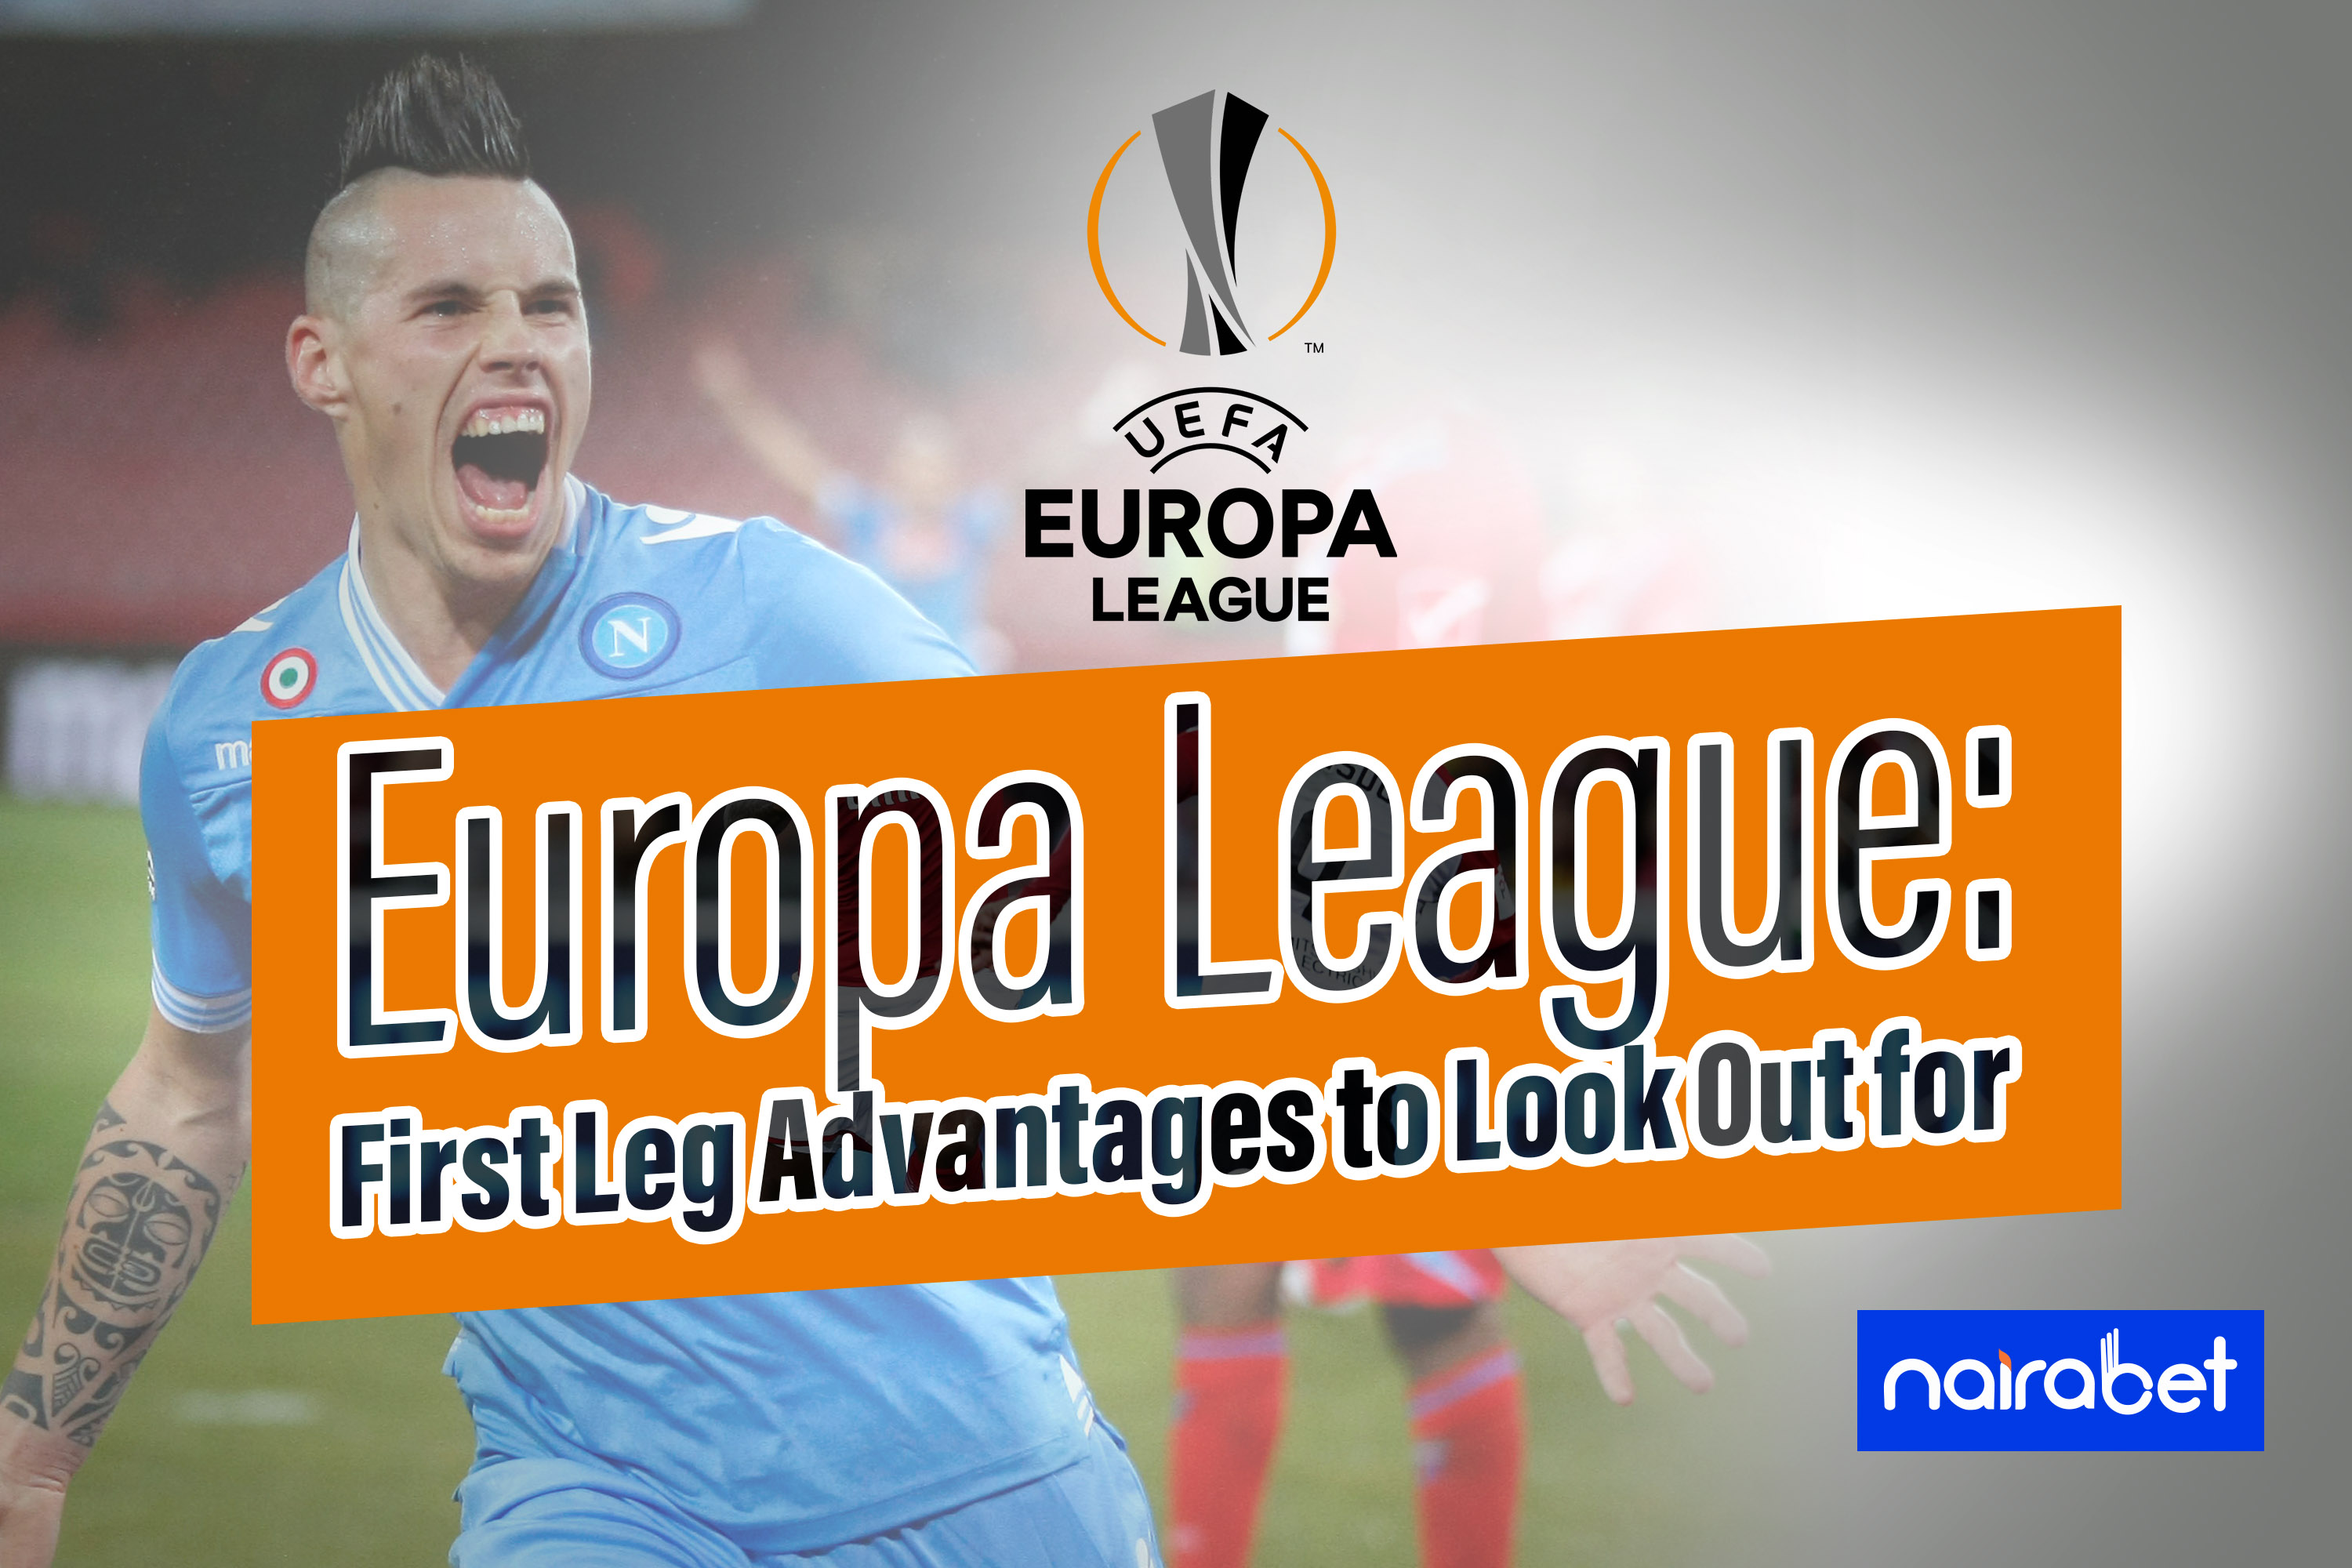 Europa league; first leg advantage